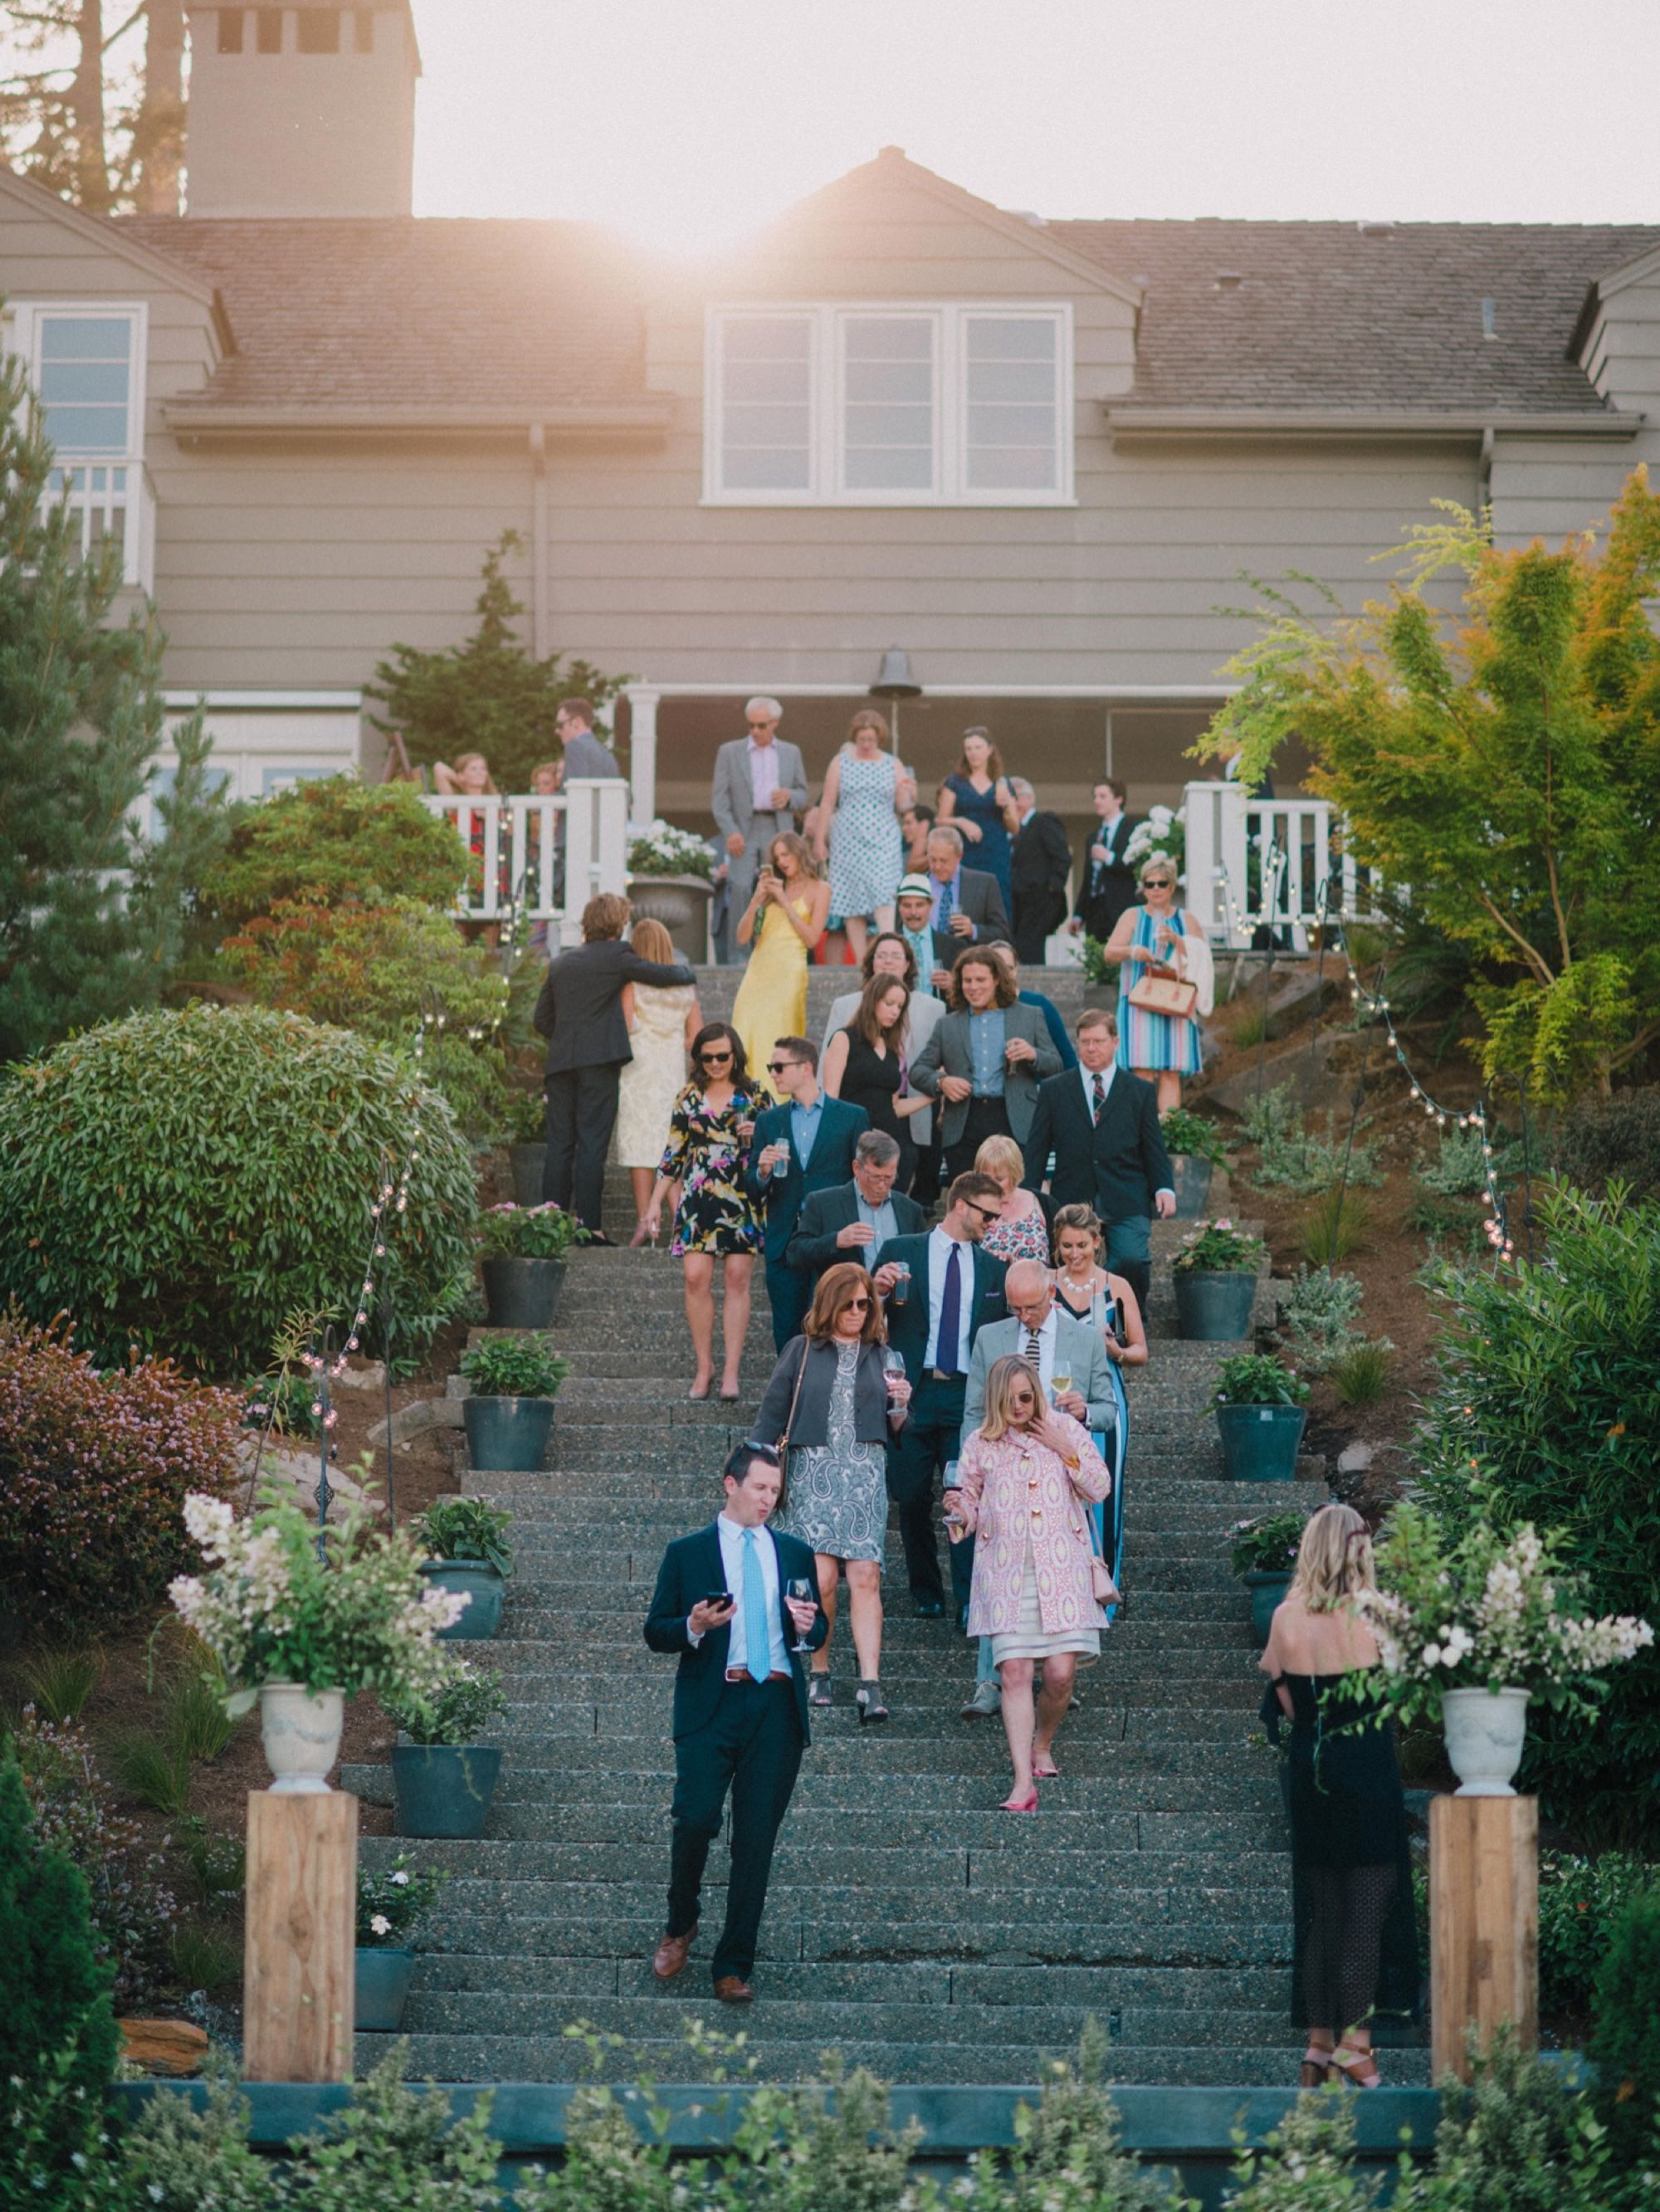 Guests entering a wedding reception in Seattle